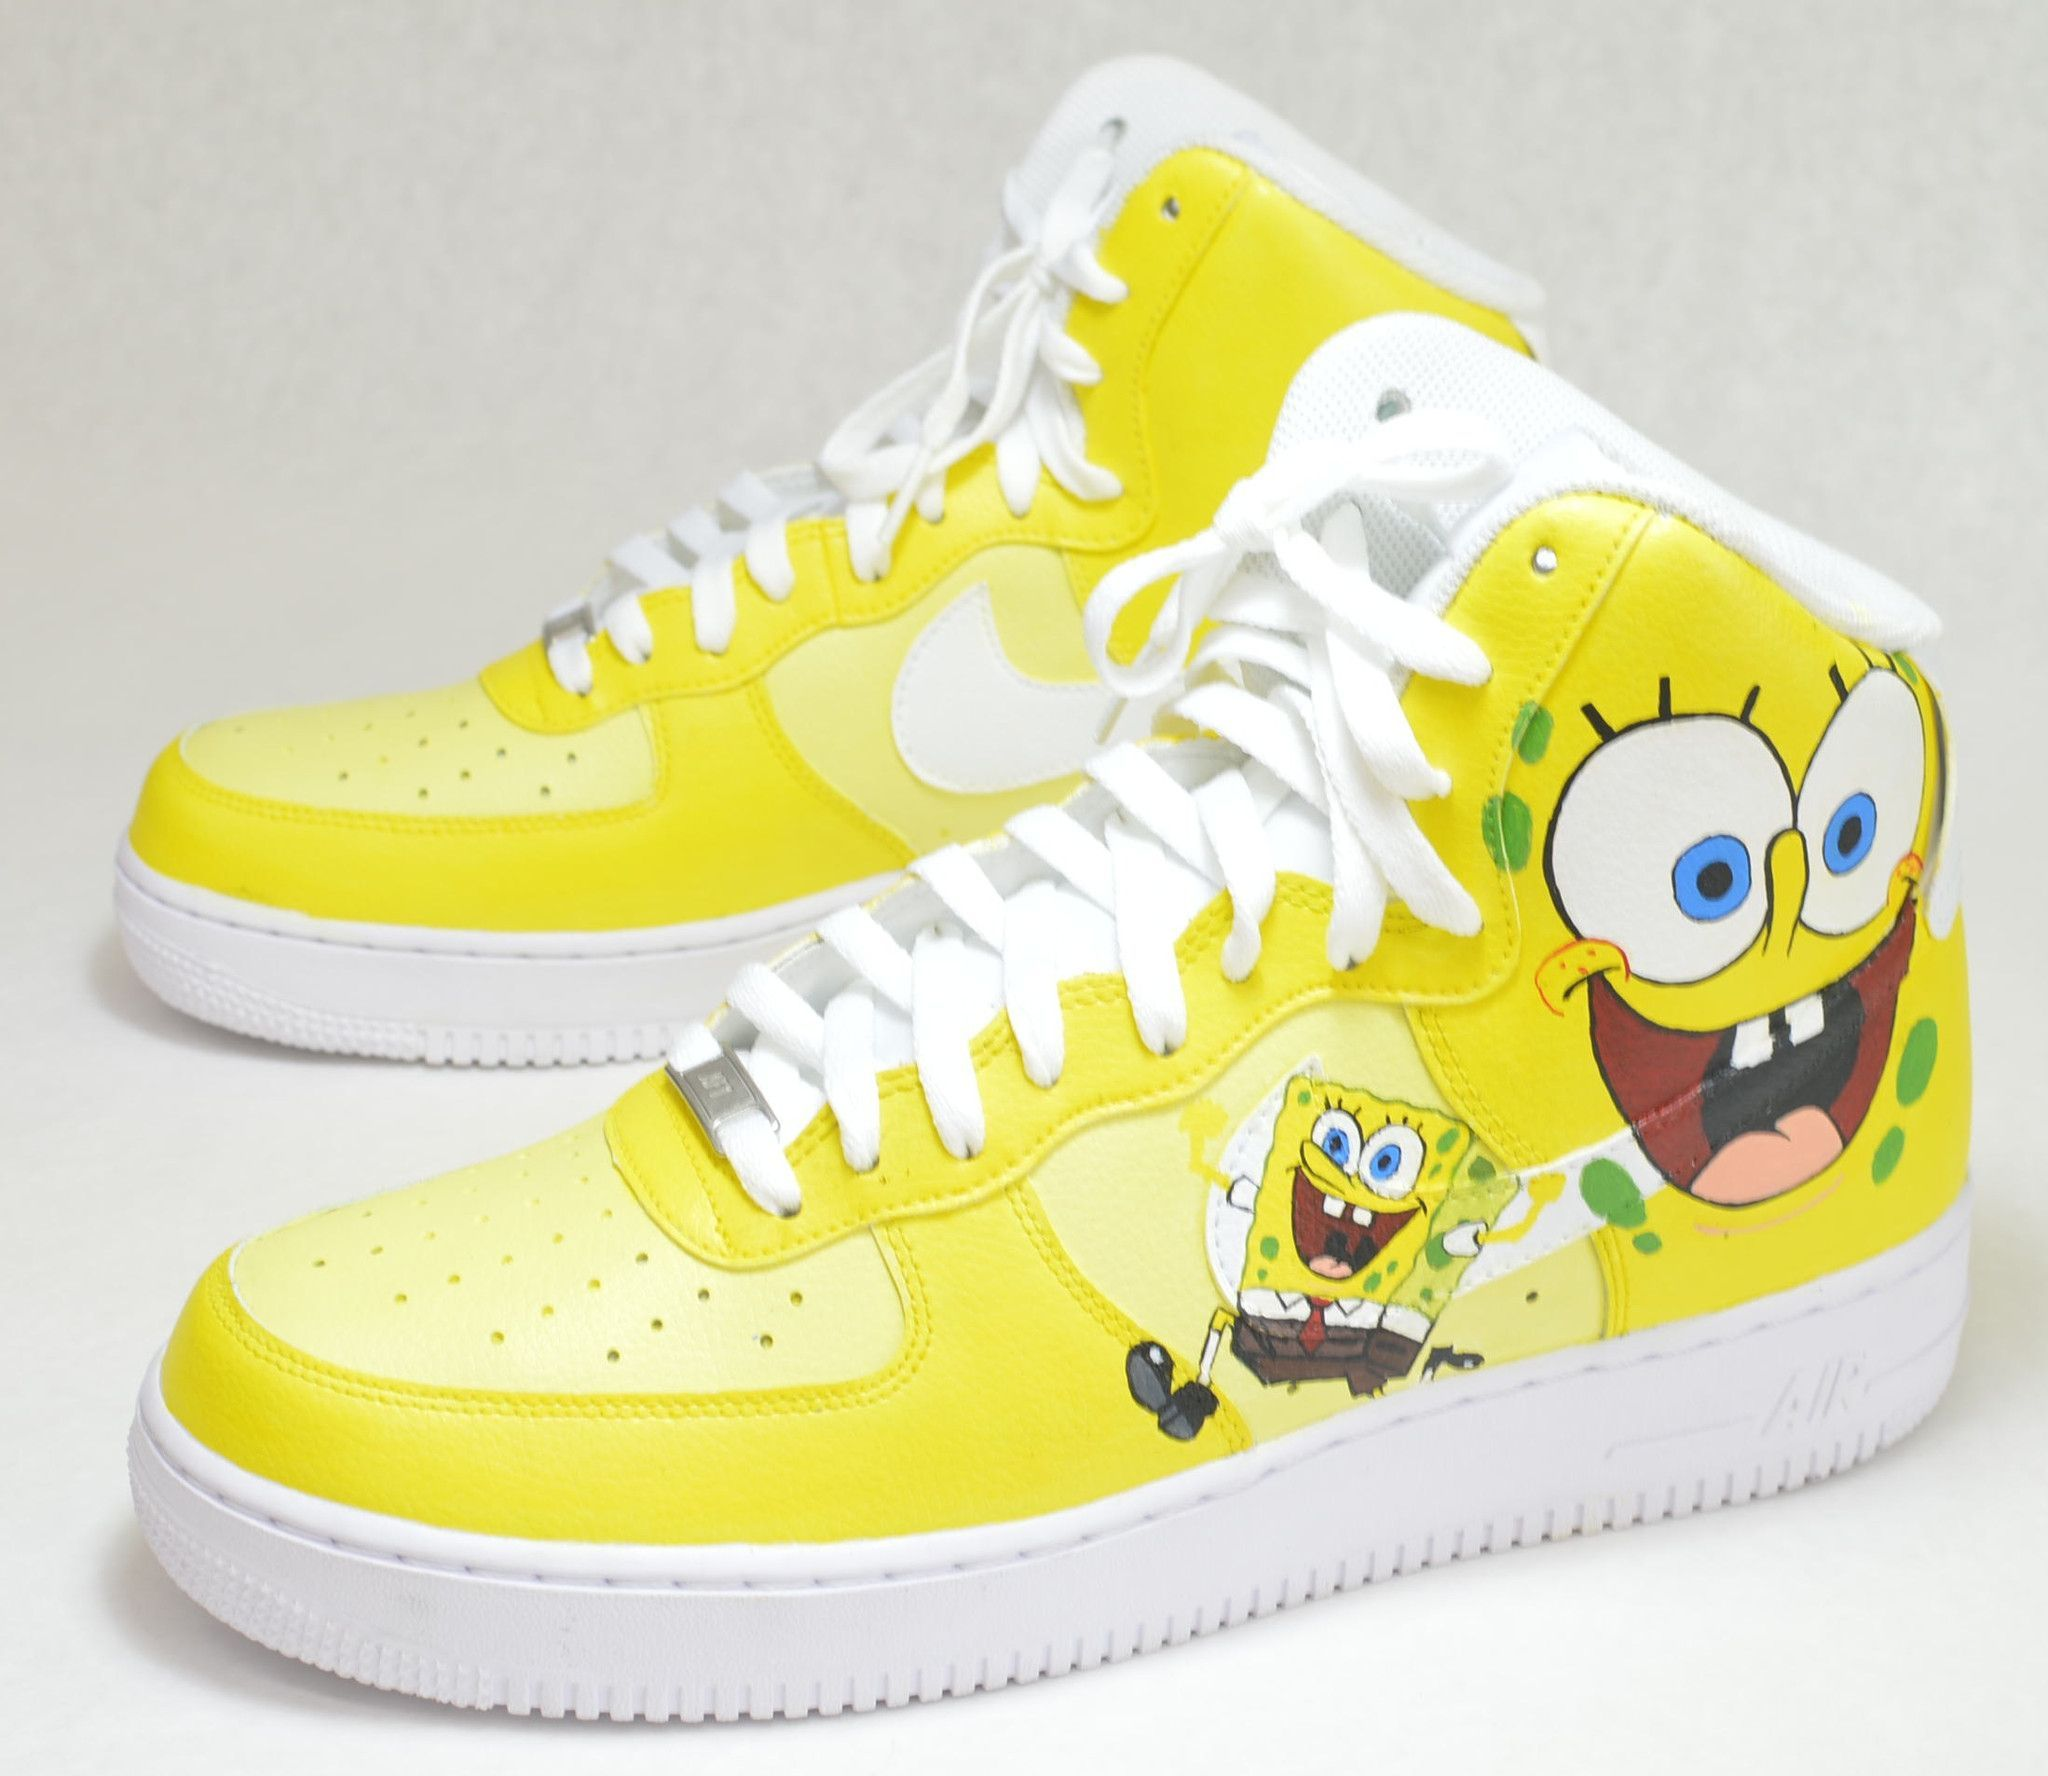 save off f083a 3a96b Spongebob SquarePants Nike AF1 High - Custom Painted Sneakers